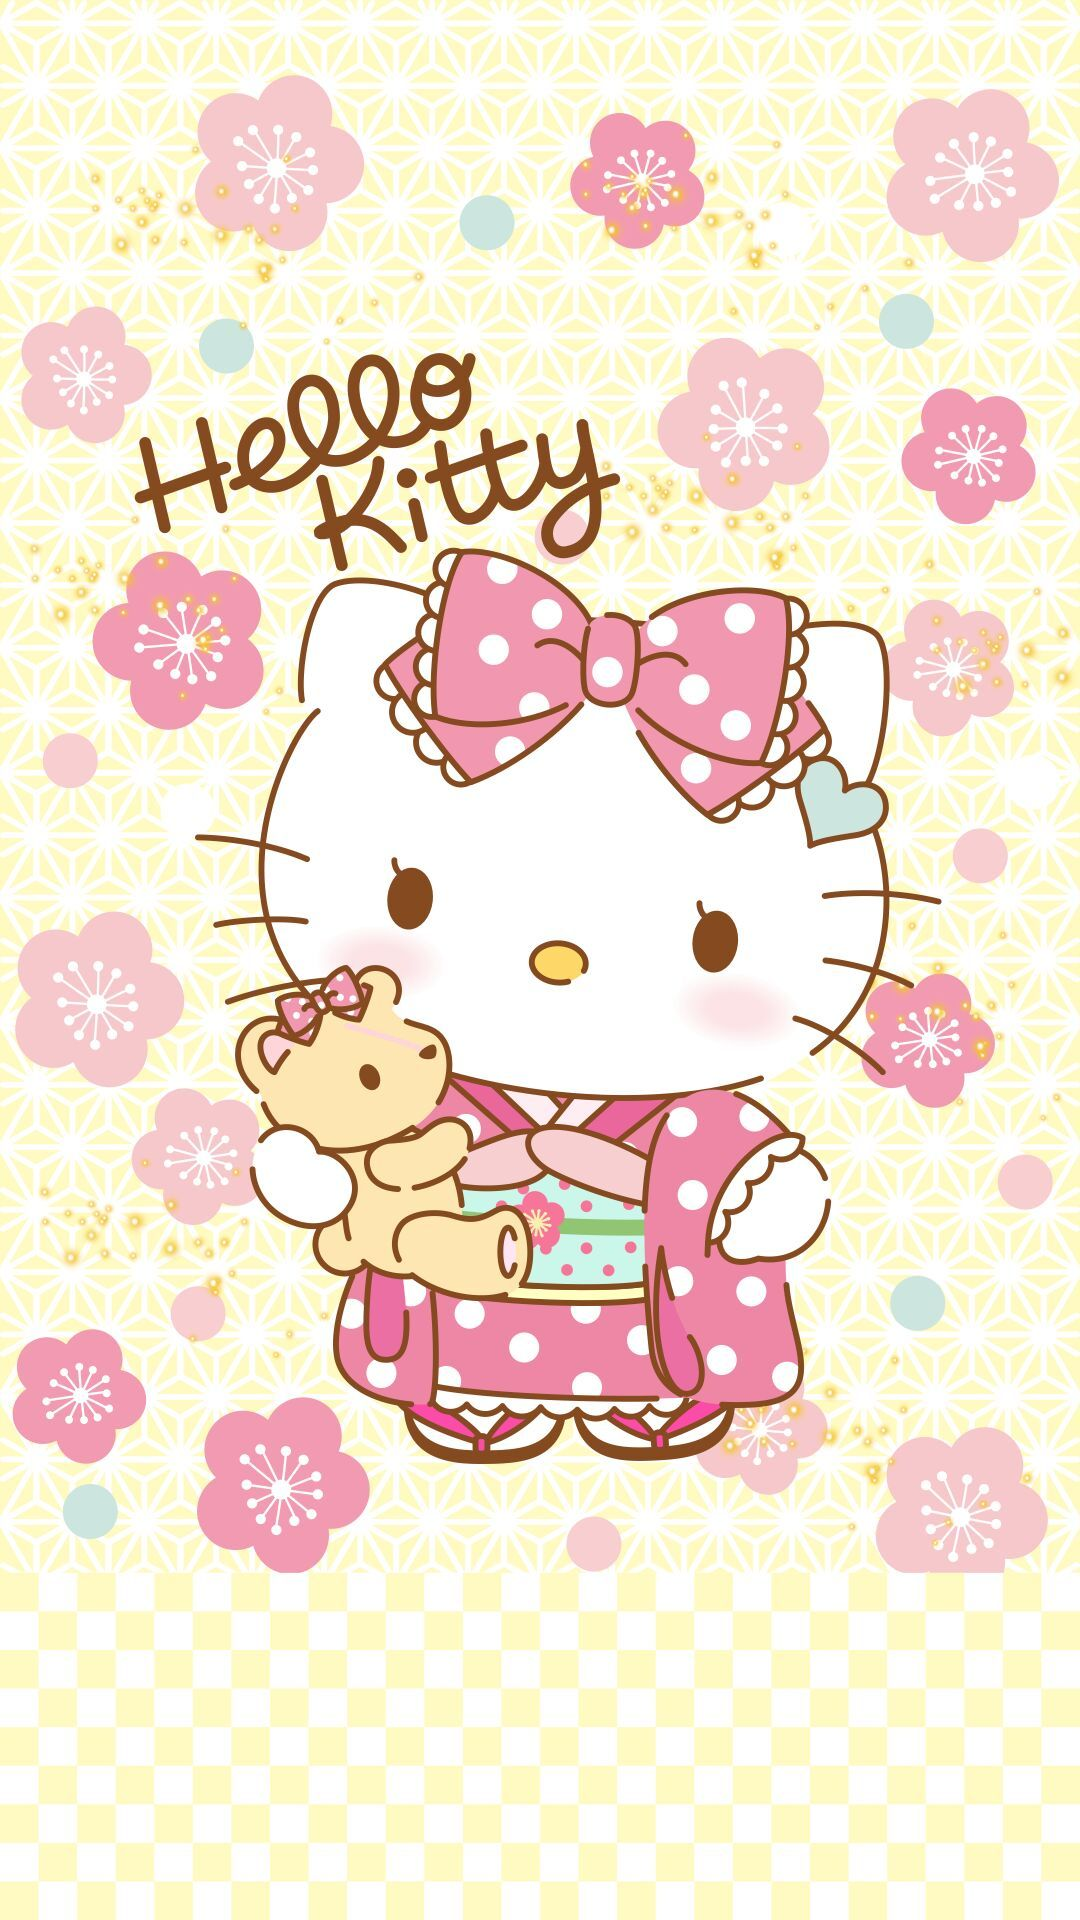 Popular Wallpaper Hello Kitty Cupcake - 32b3bfa2676c1831b88bb115088613a1  Perfect Image Reference_9333.jpg